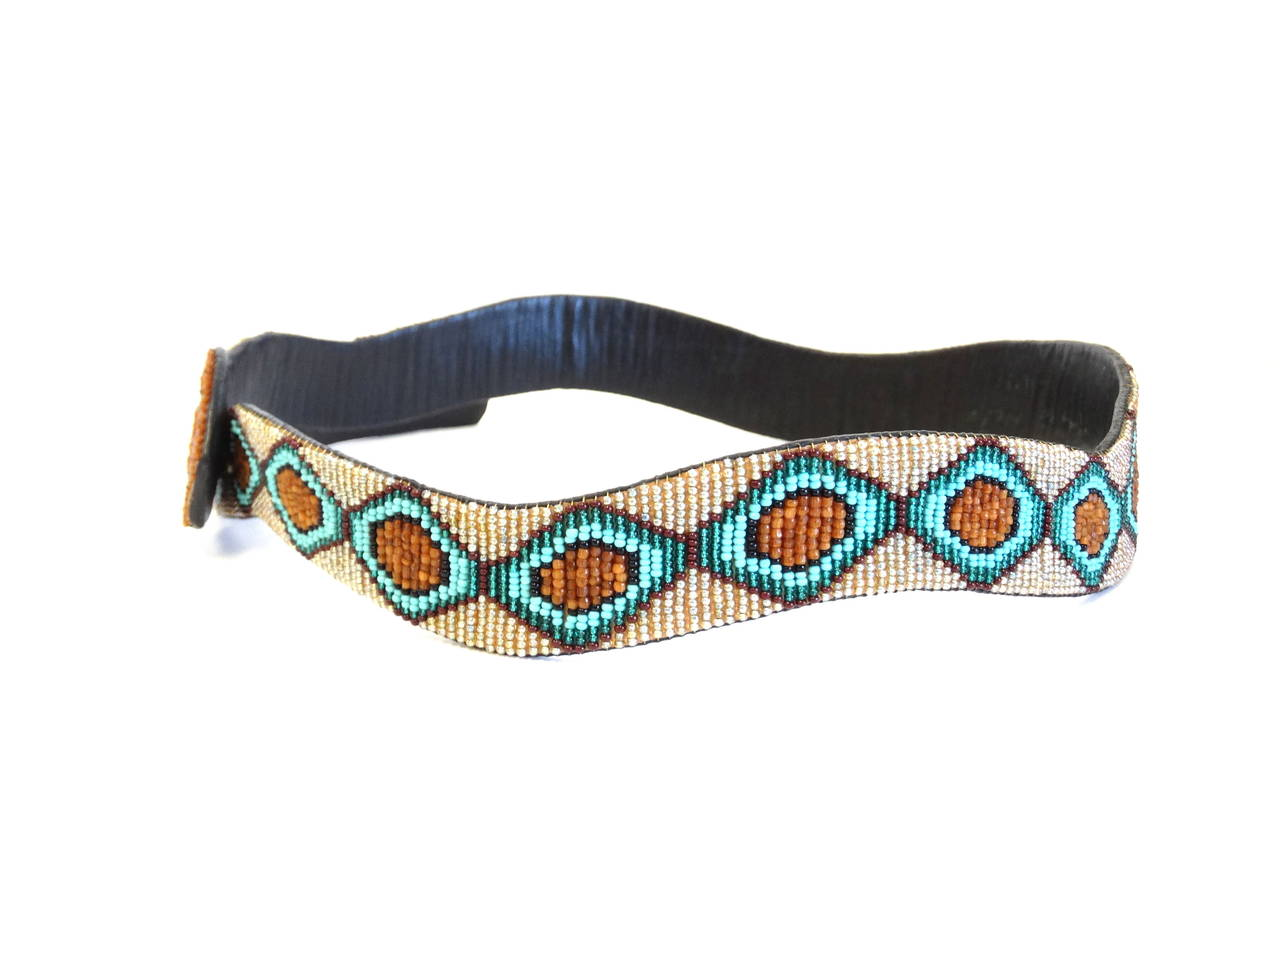 1990s Beaded Diamondback Rattlesnake Belt In Excellent Condition For Sale In Scottsdale, AZ